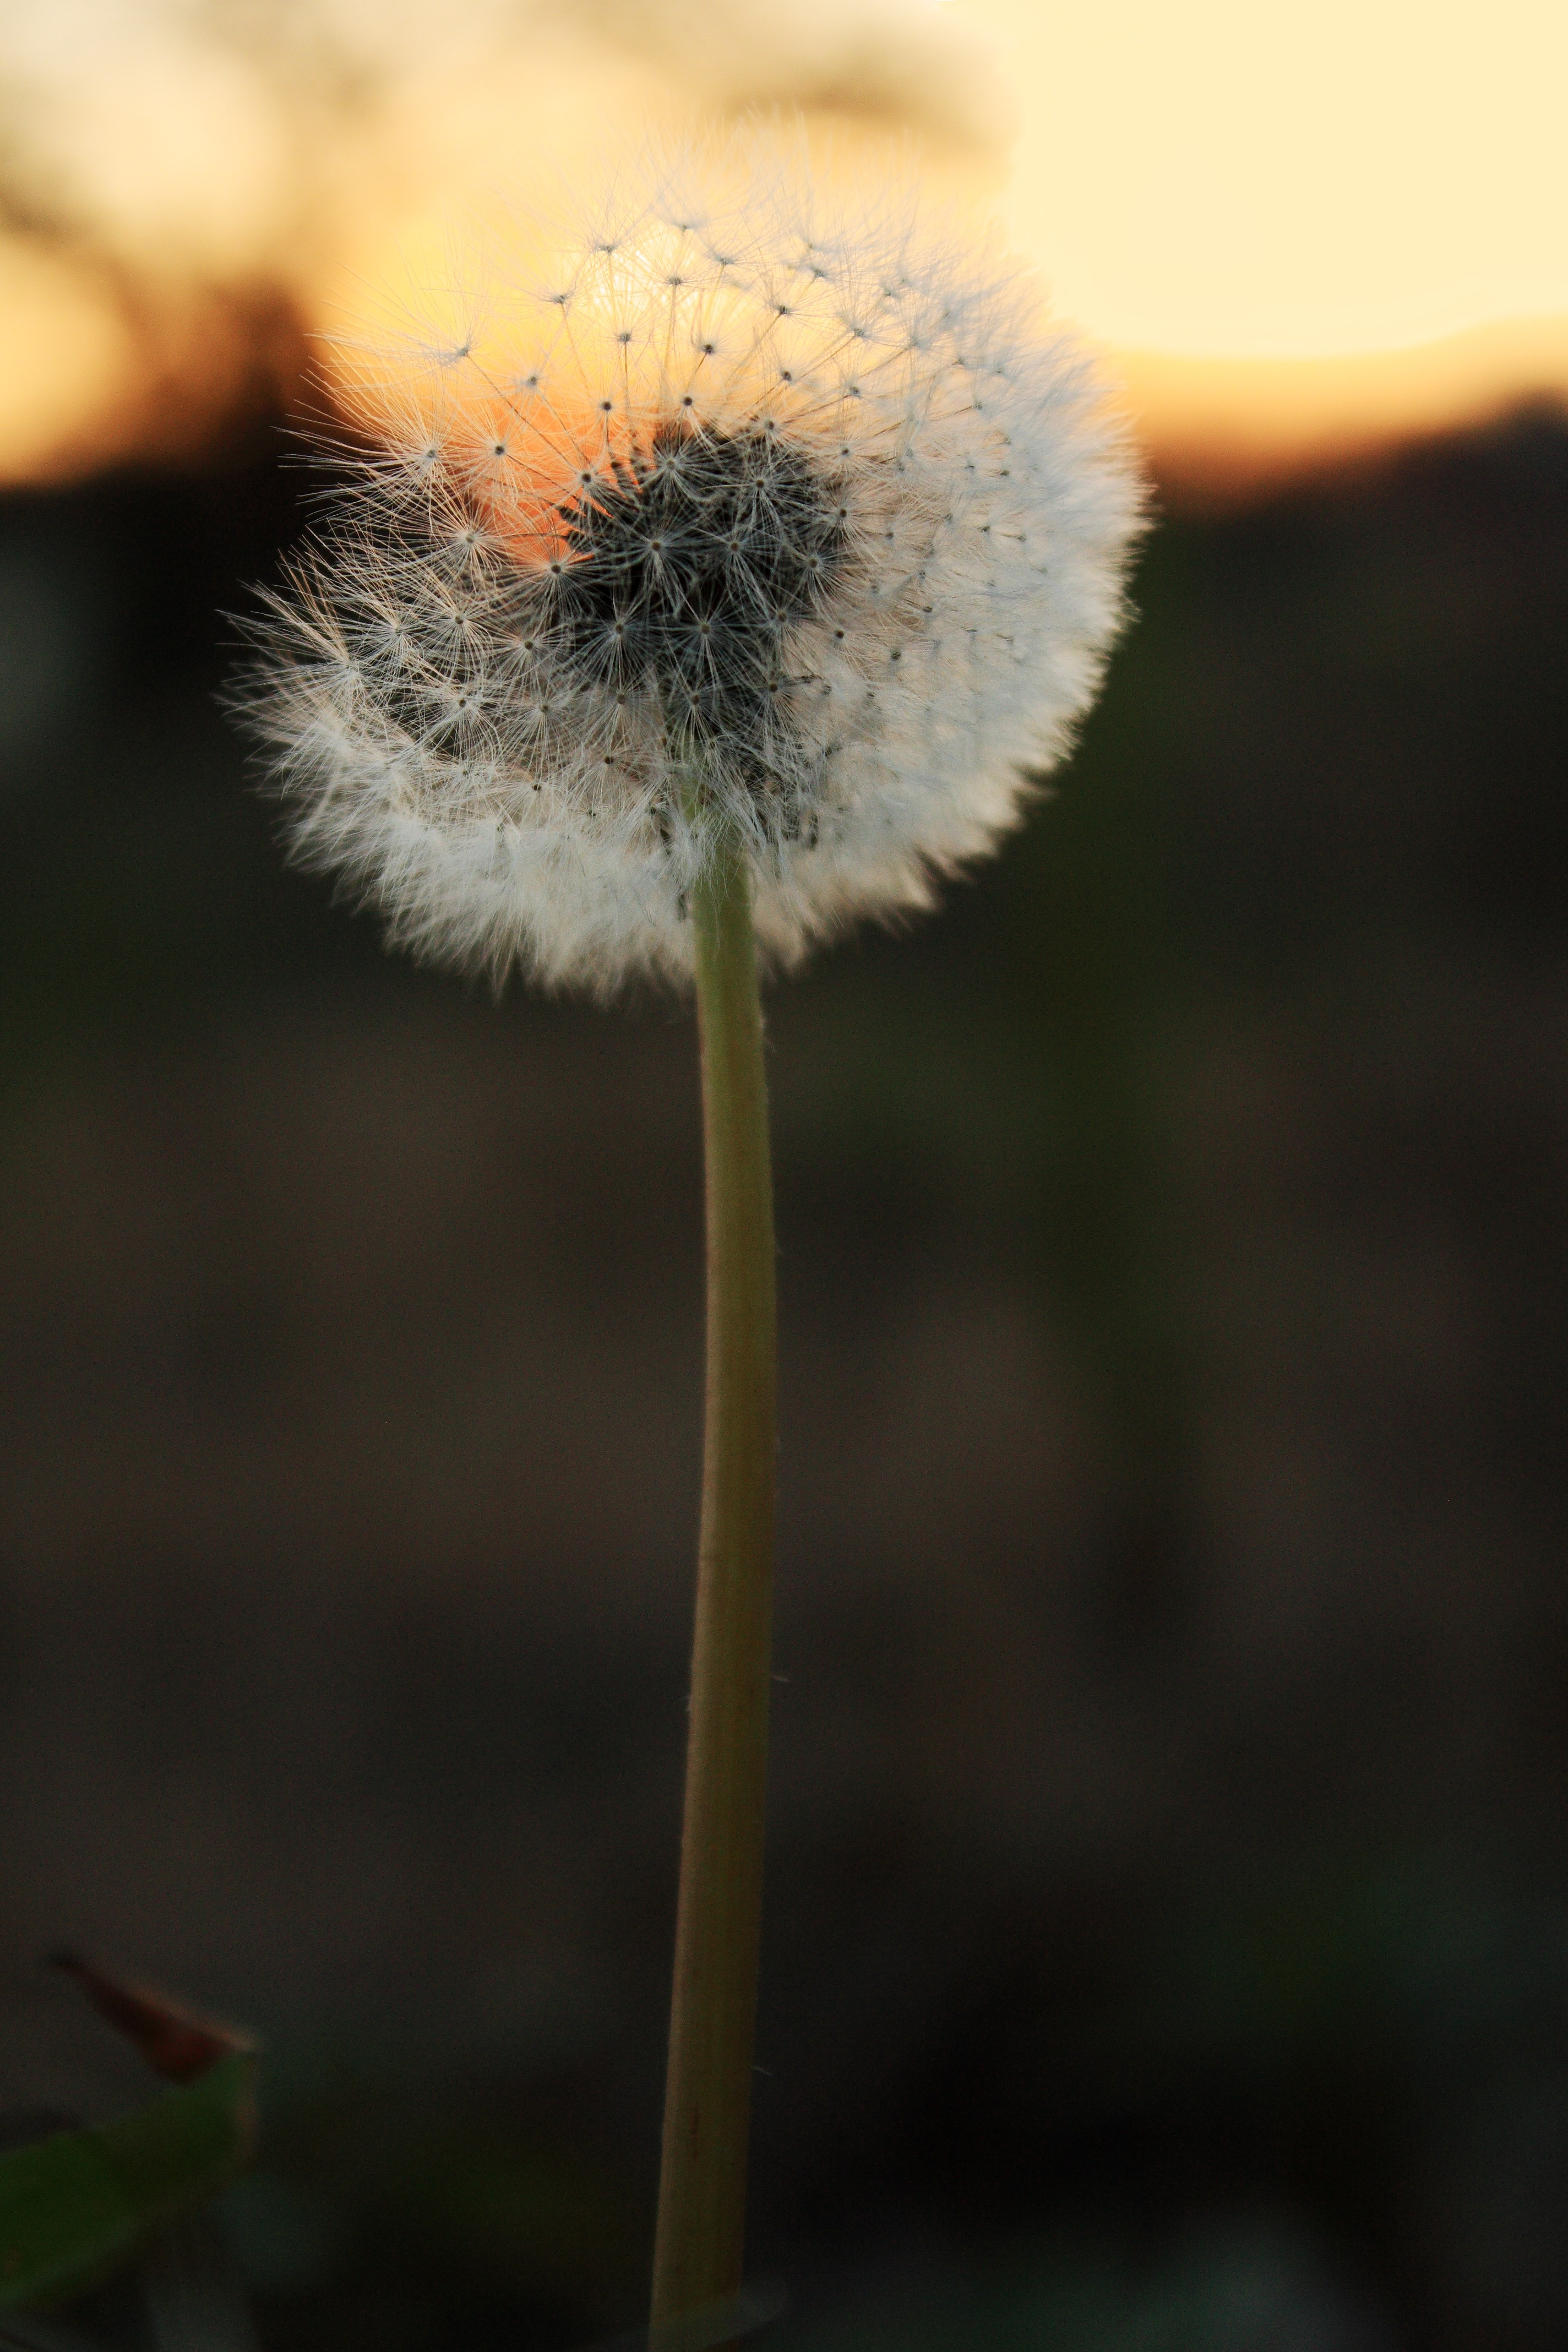 IMG_3686A_Dandelion at Sunset